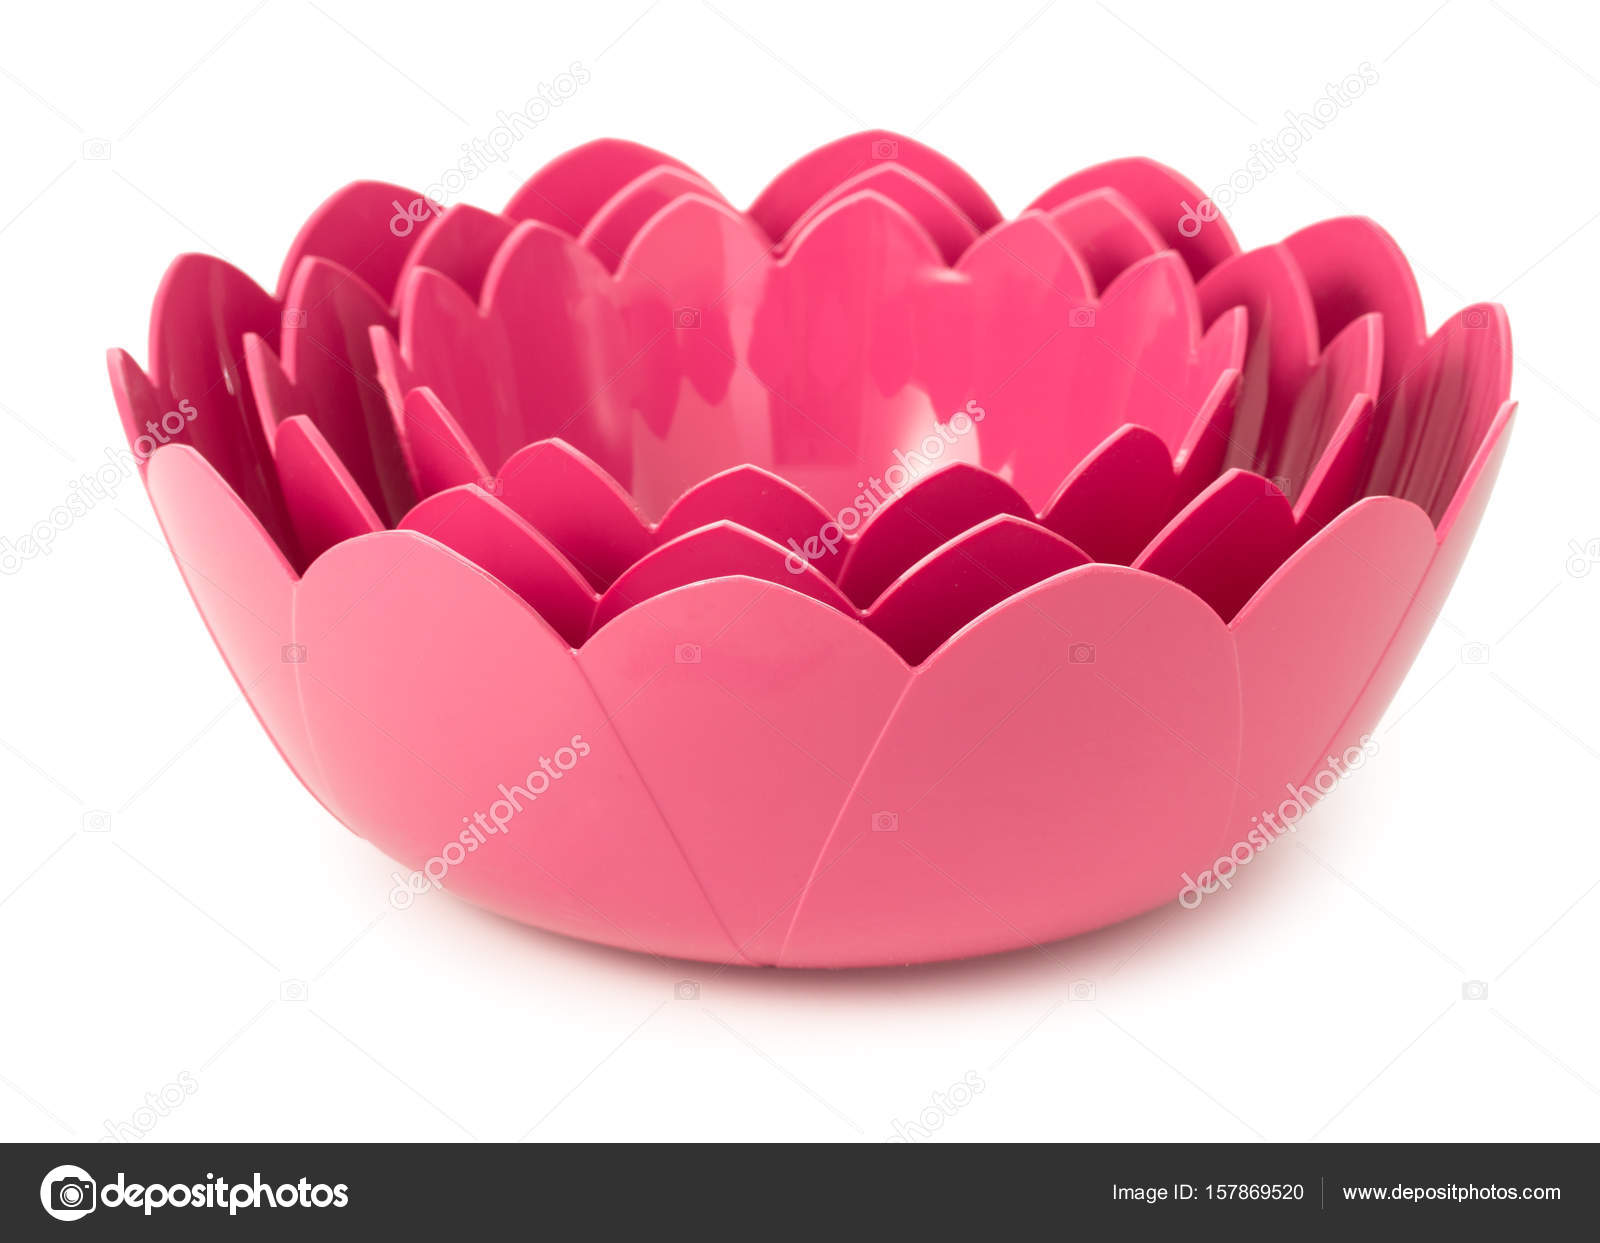 Set Of 3 Pink Plastic Bowls Made In Shape Of Flowers Of Lotus Is